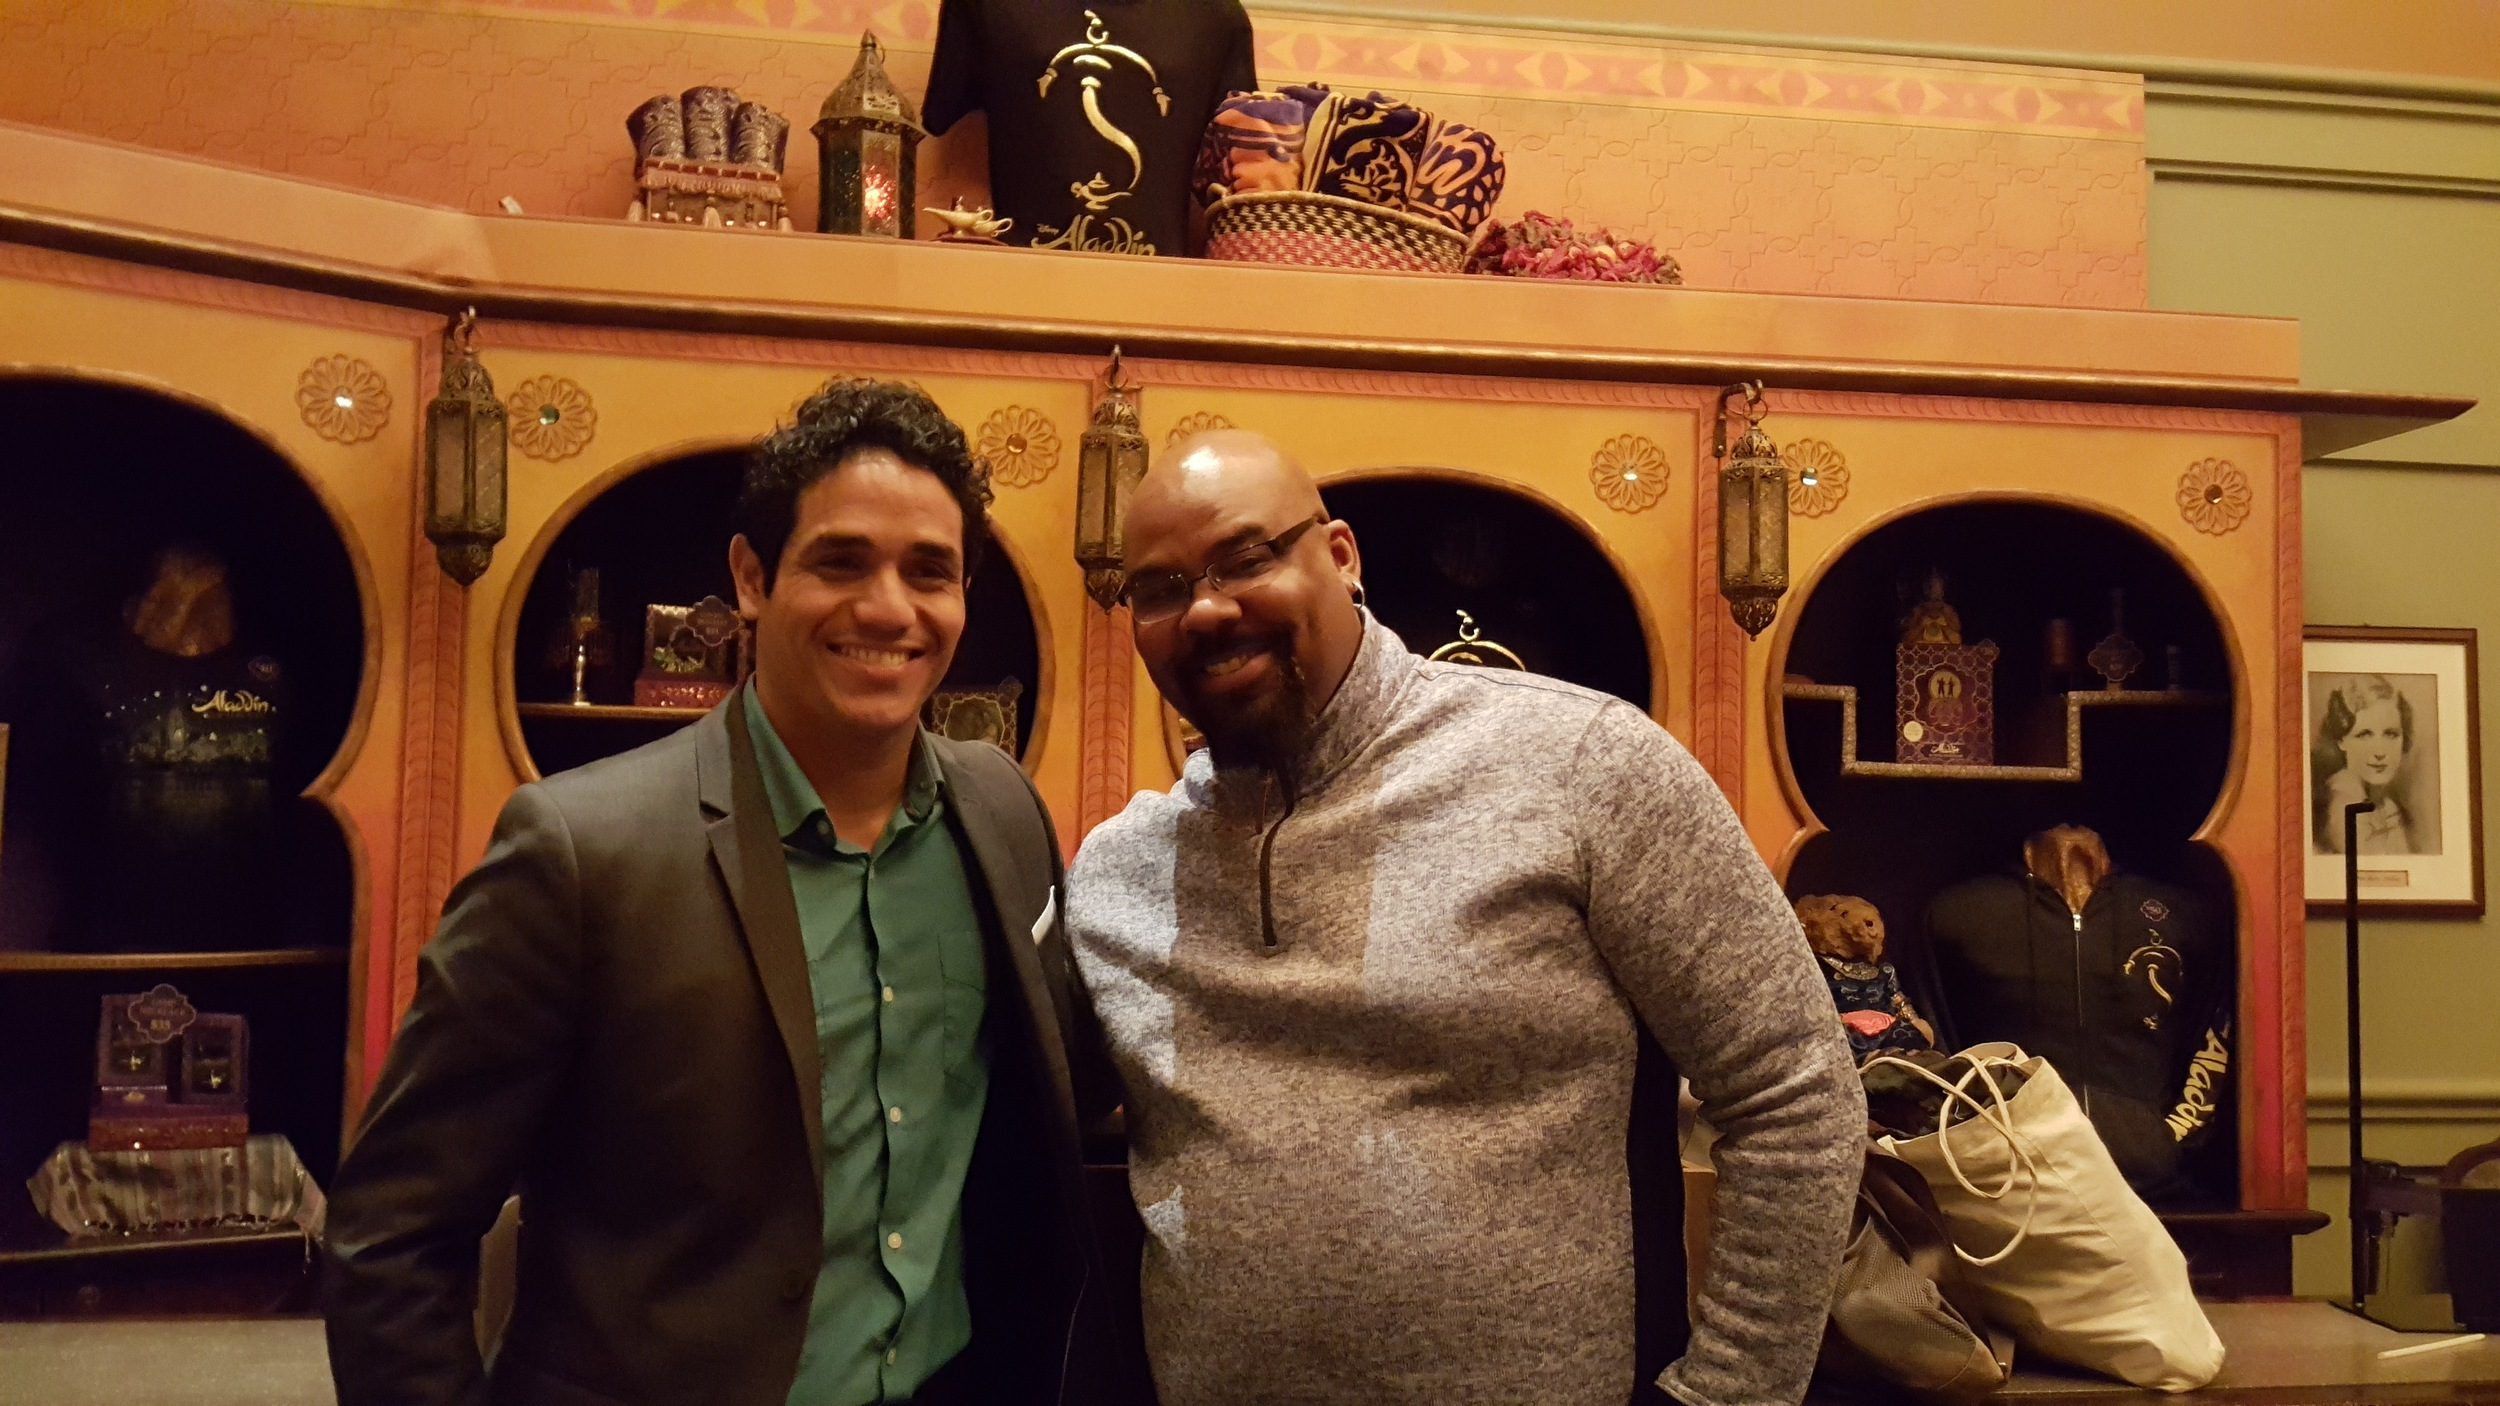 Adam Jacobs, (Aladdin) Tony winner James Monroe Iglehart (Genie) .jpg